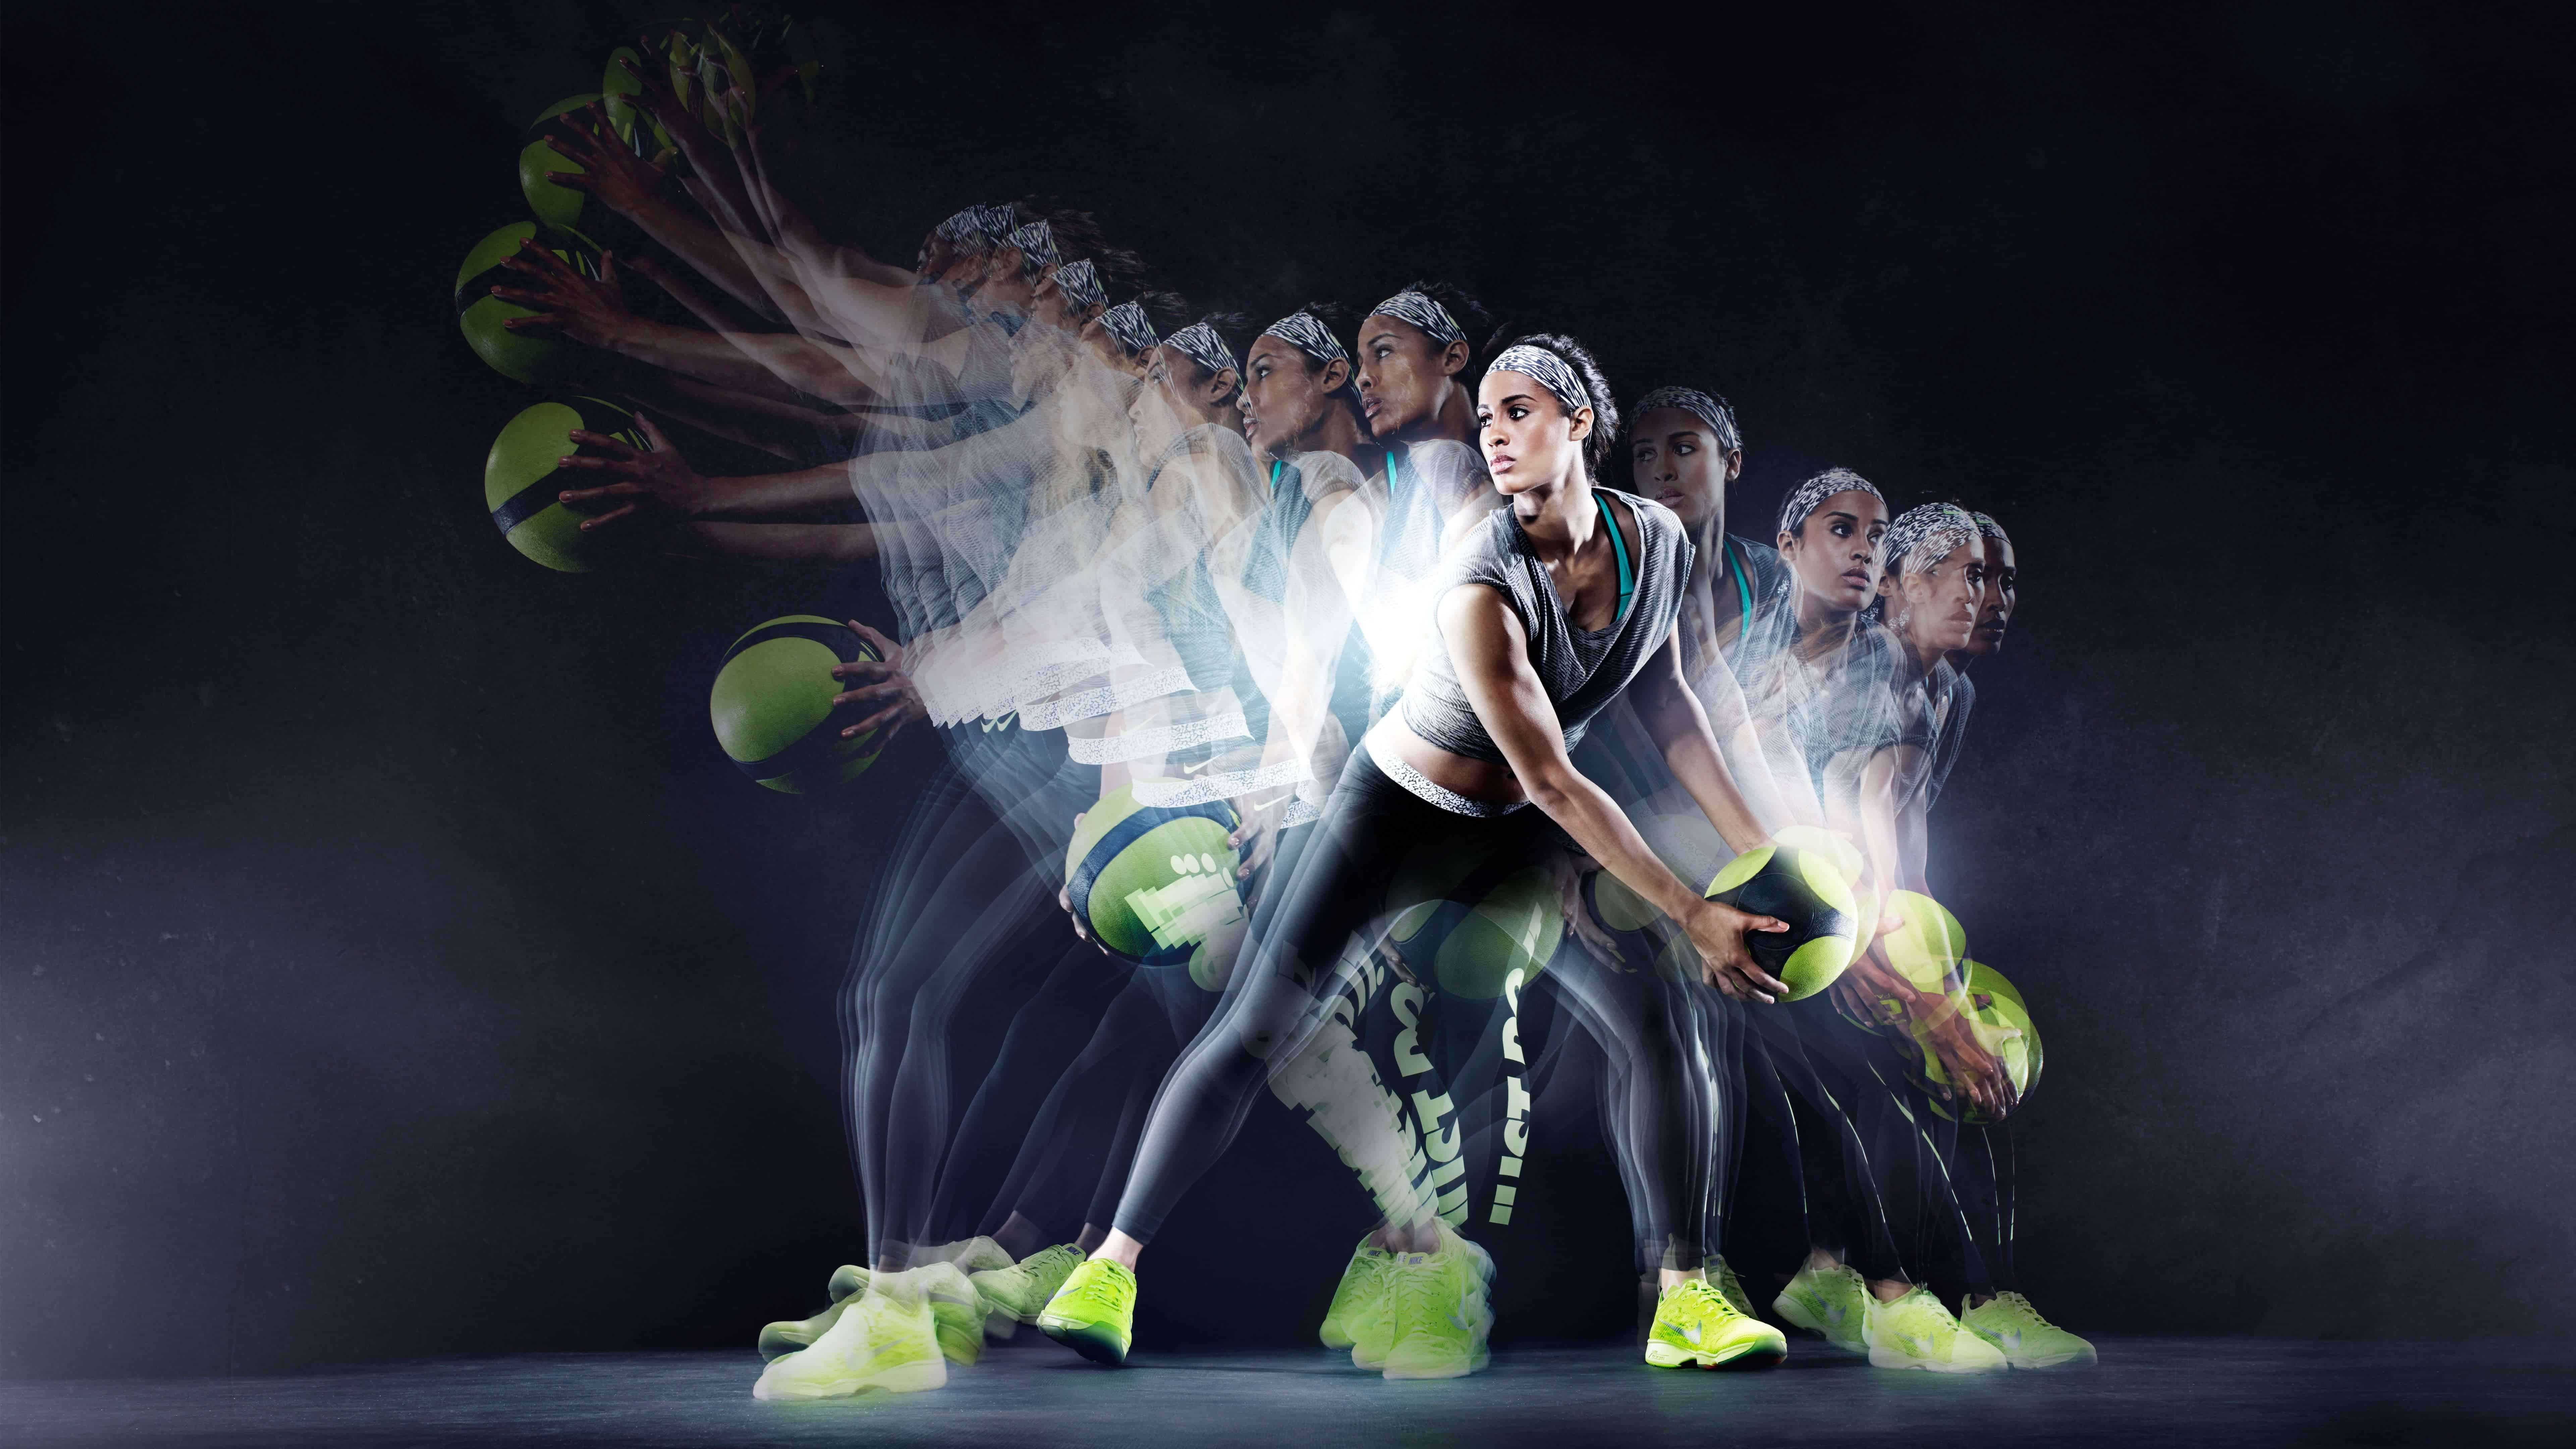 Nike Zoom Fit Agility Fitness Footwear UHD 8K Wallpaper ...